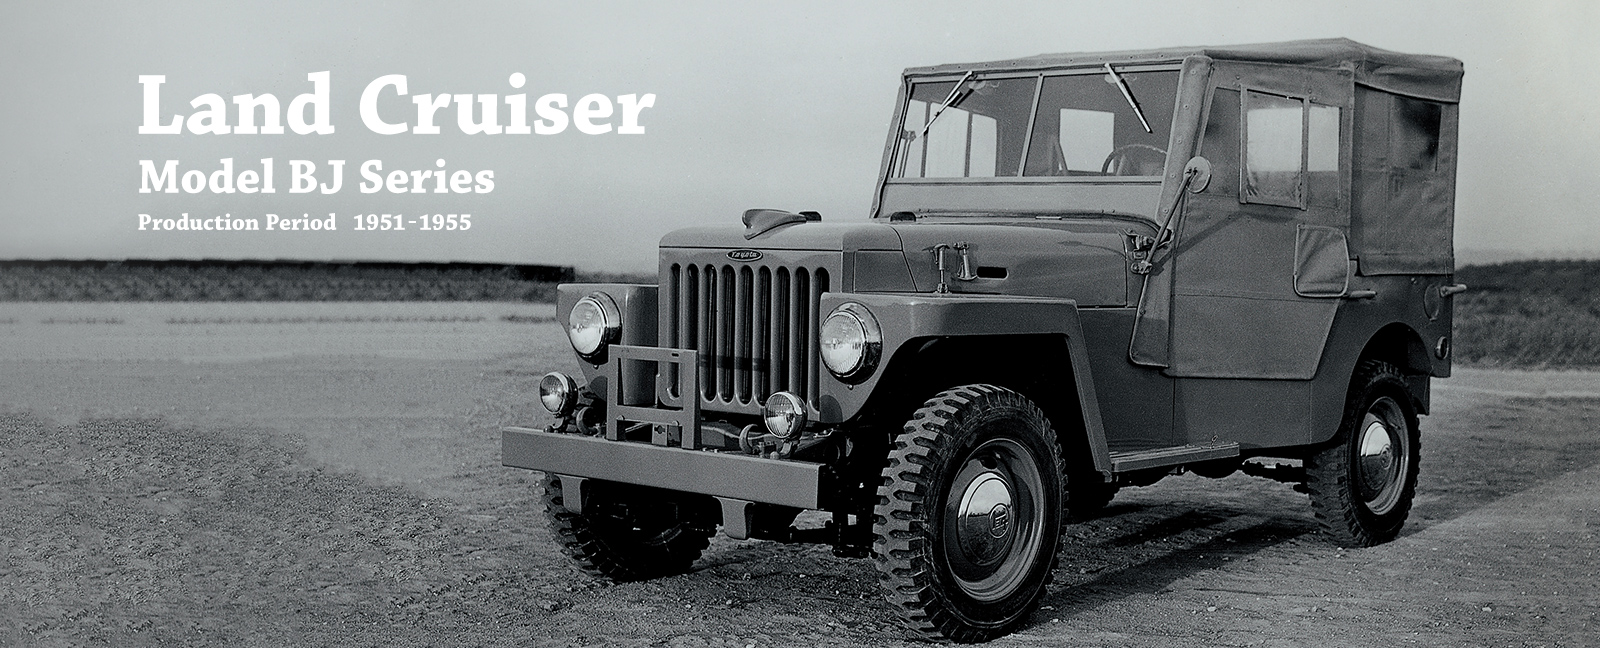 Vehicle Heritage, Land Cruiser, Model BJ Series